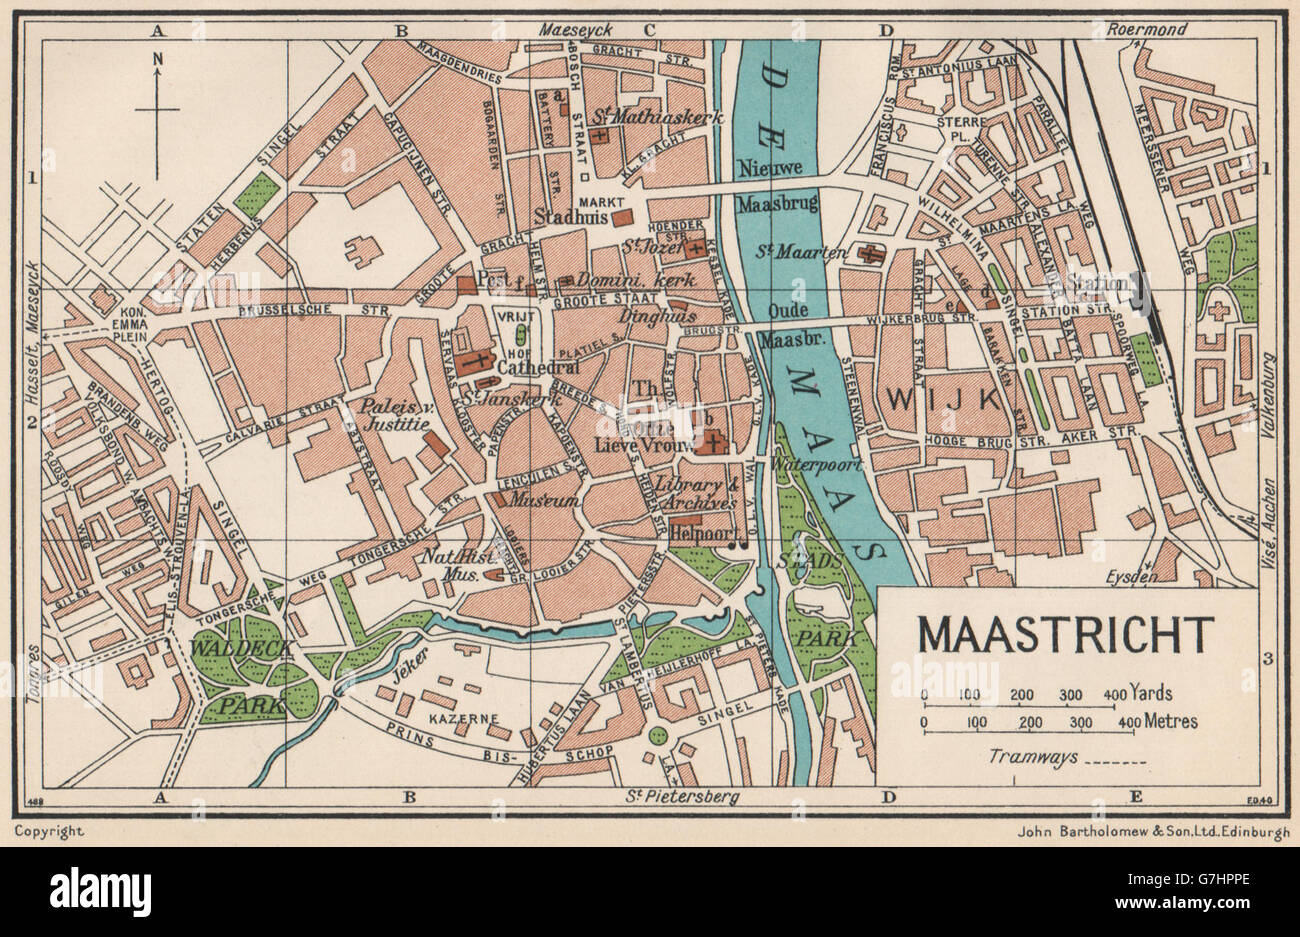 Maastricht Limburg Netherlands Small Maastricht Map